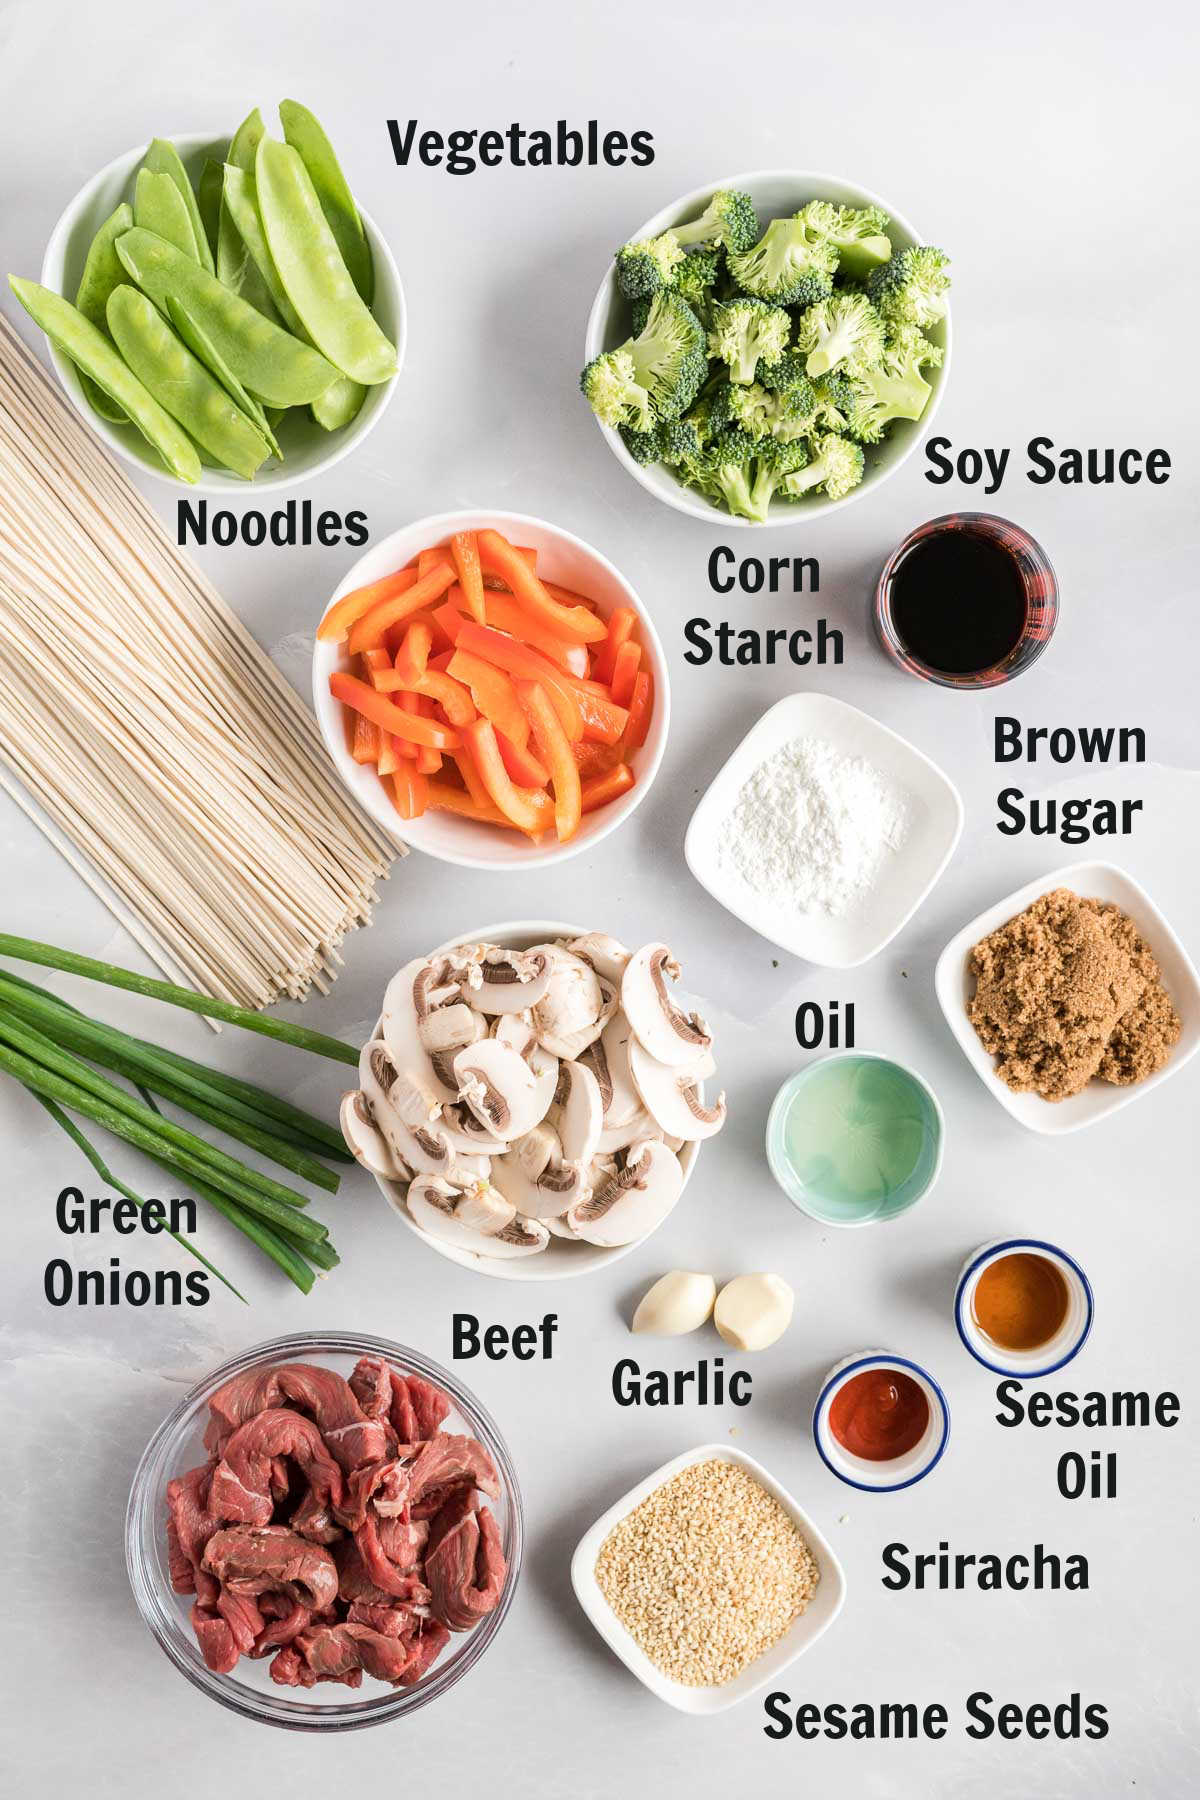 Ingredients to make lo mein